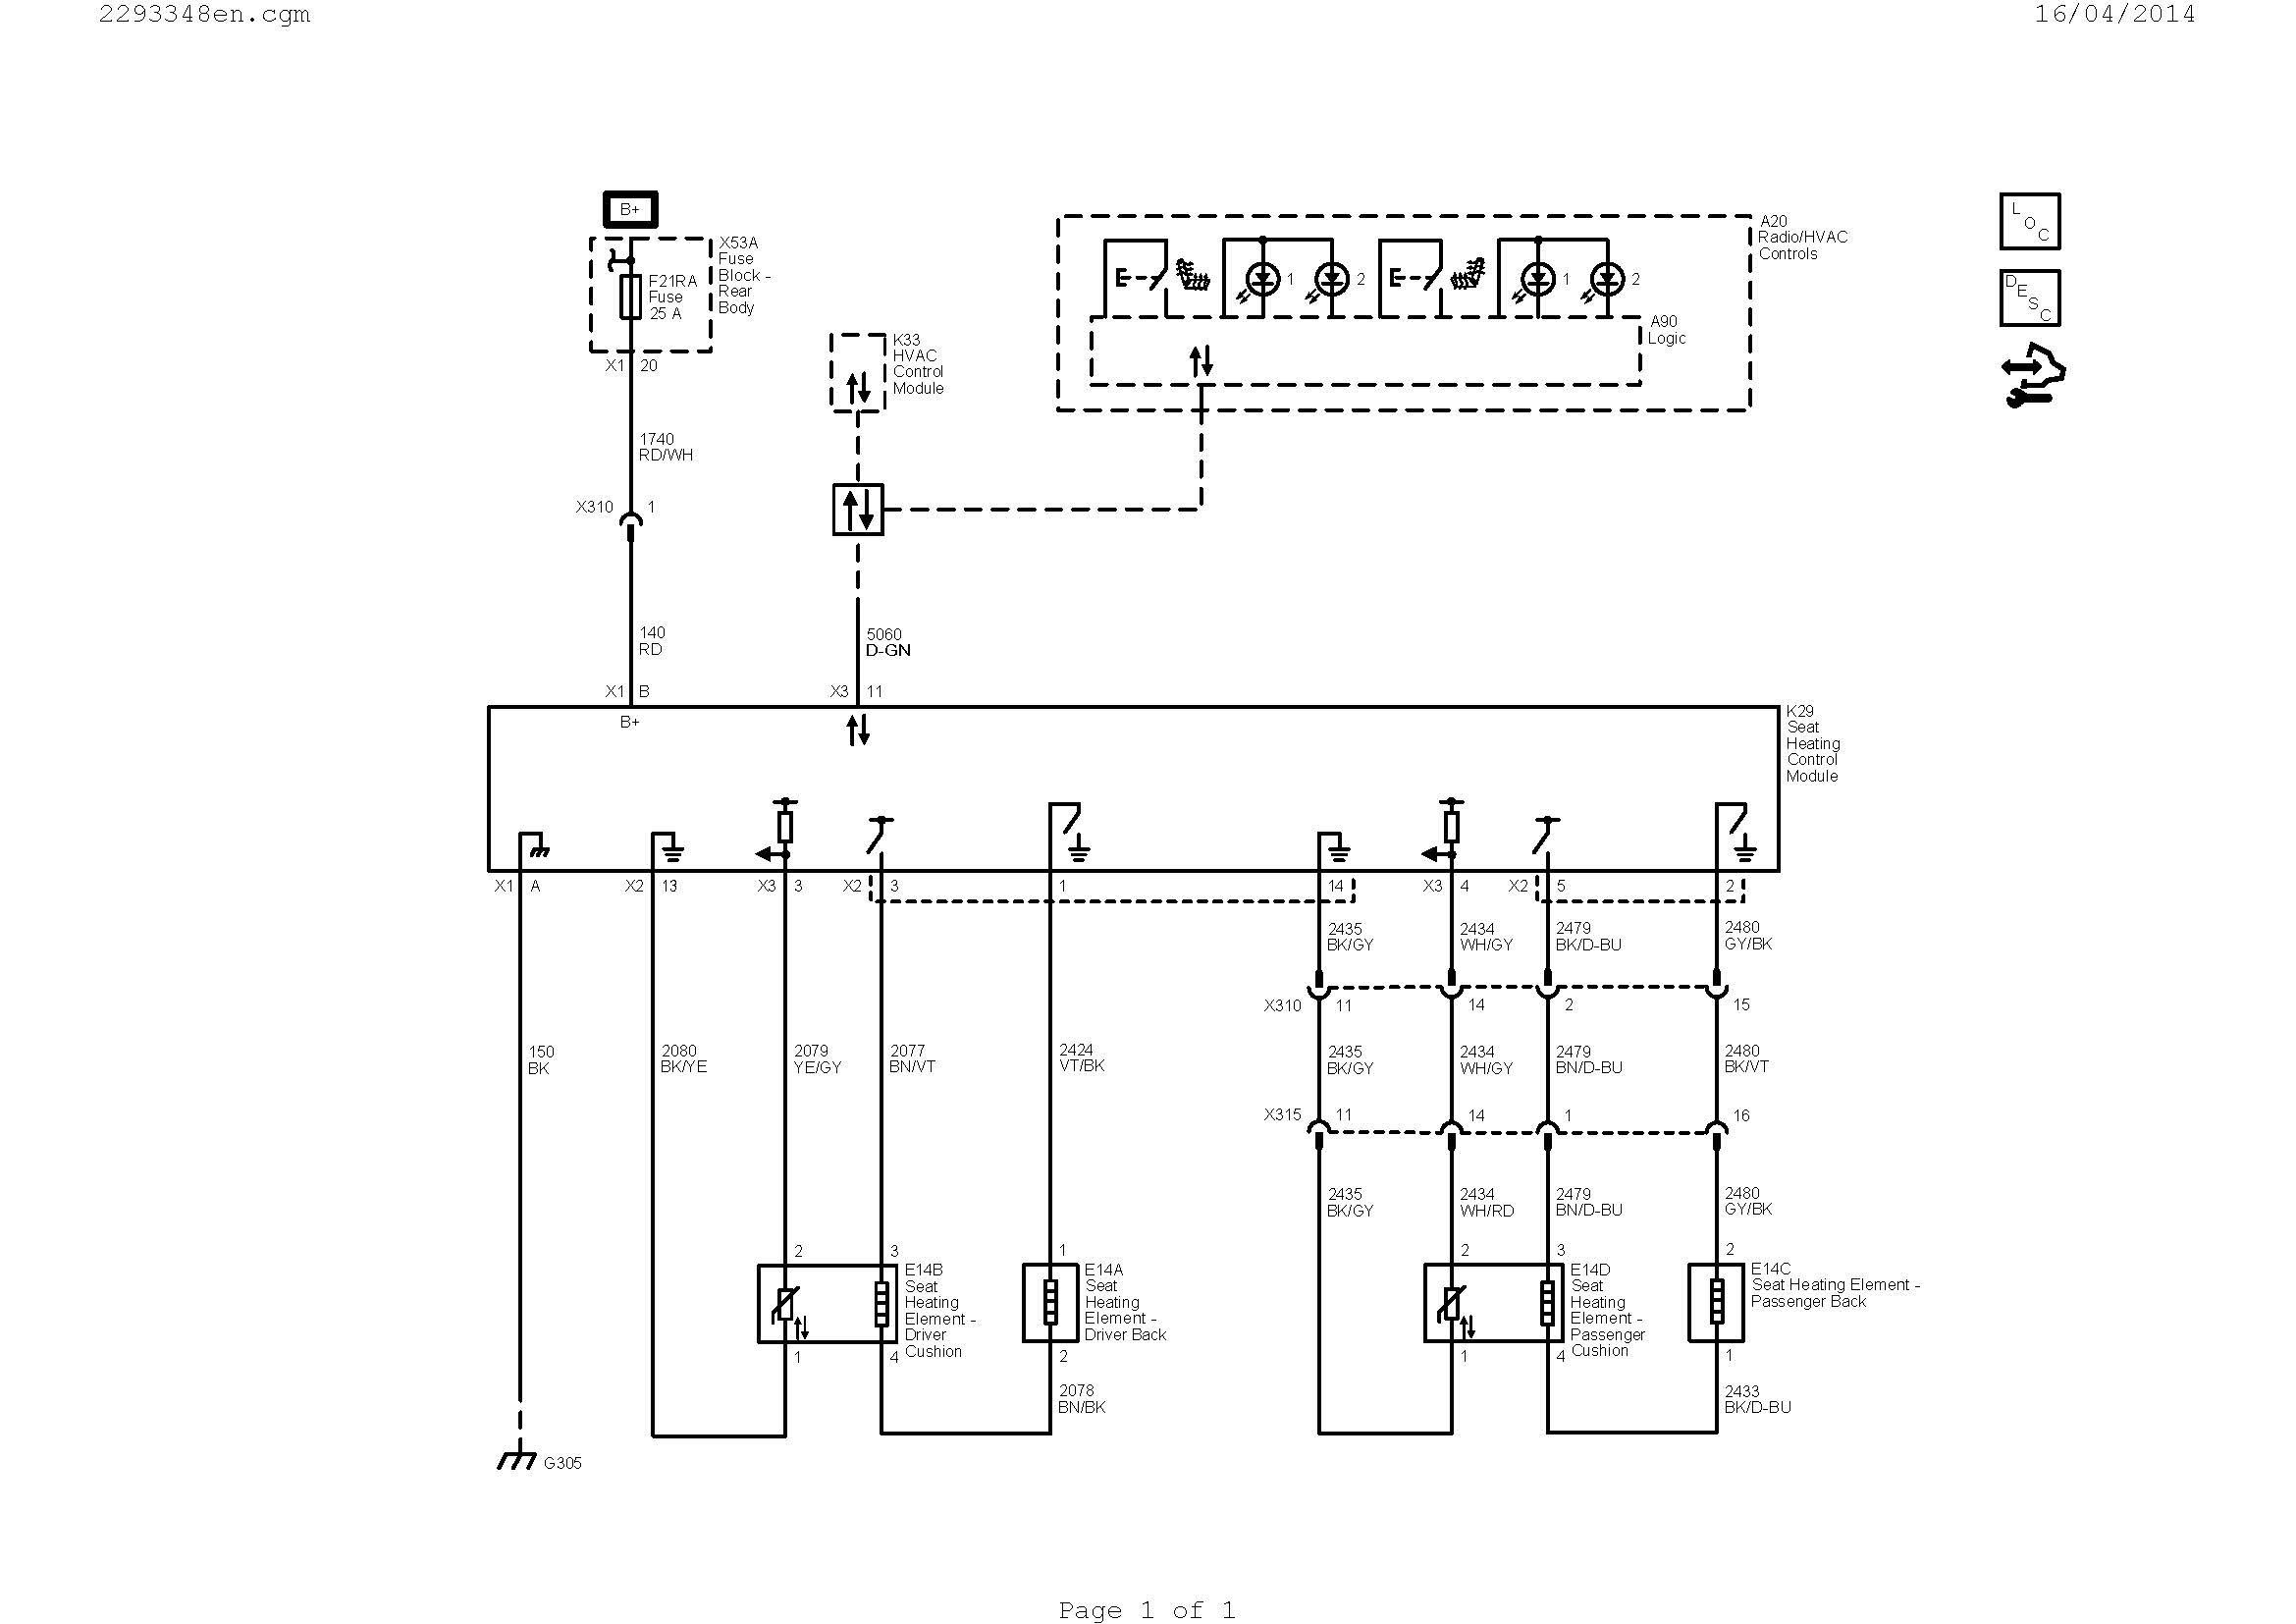 house thermostat wiring diagram Download-7 wire thermostat wiring diagram Download Wiring A Ac Thermostat Diagram New Wiring Diagram Ac 6-a